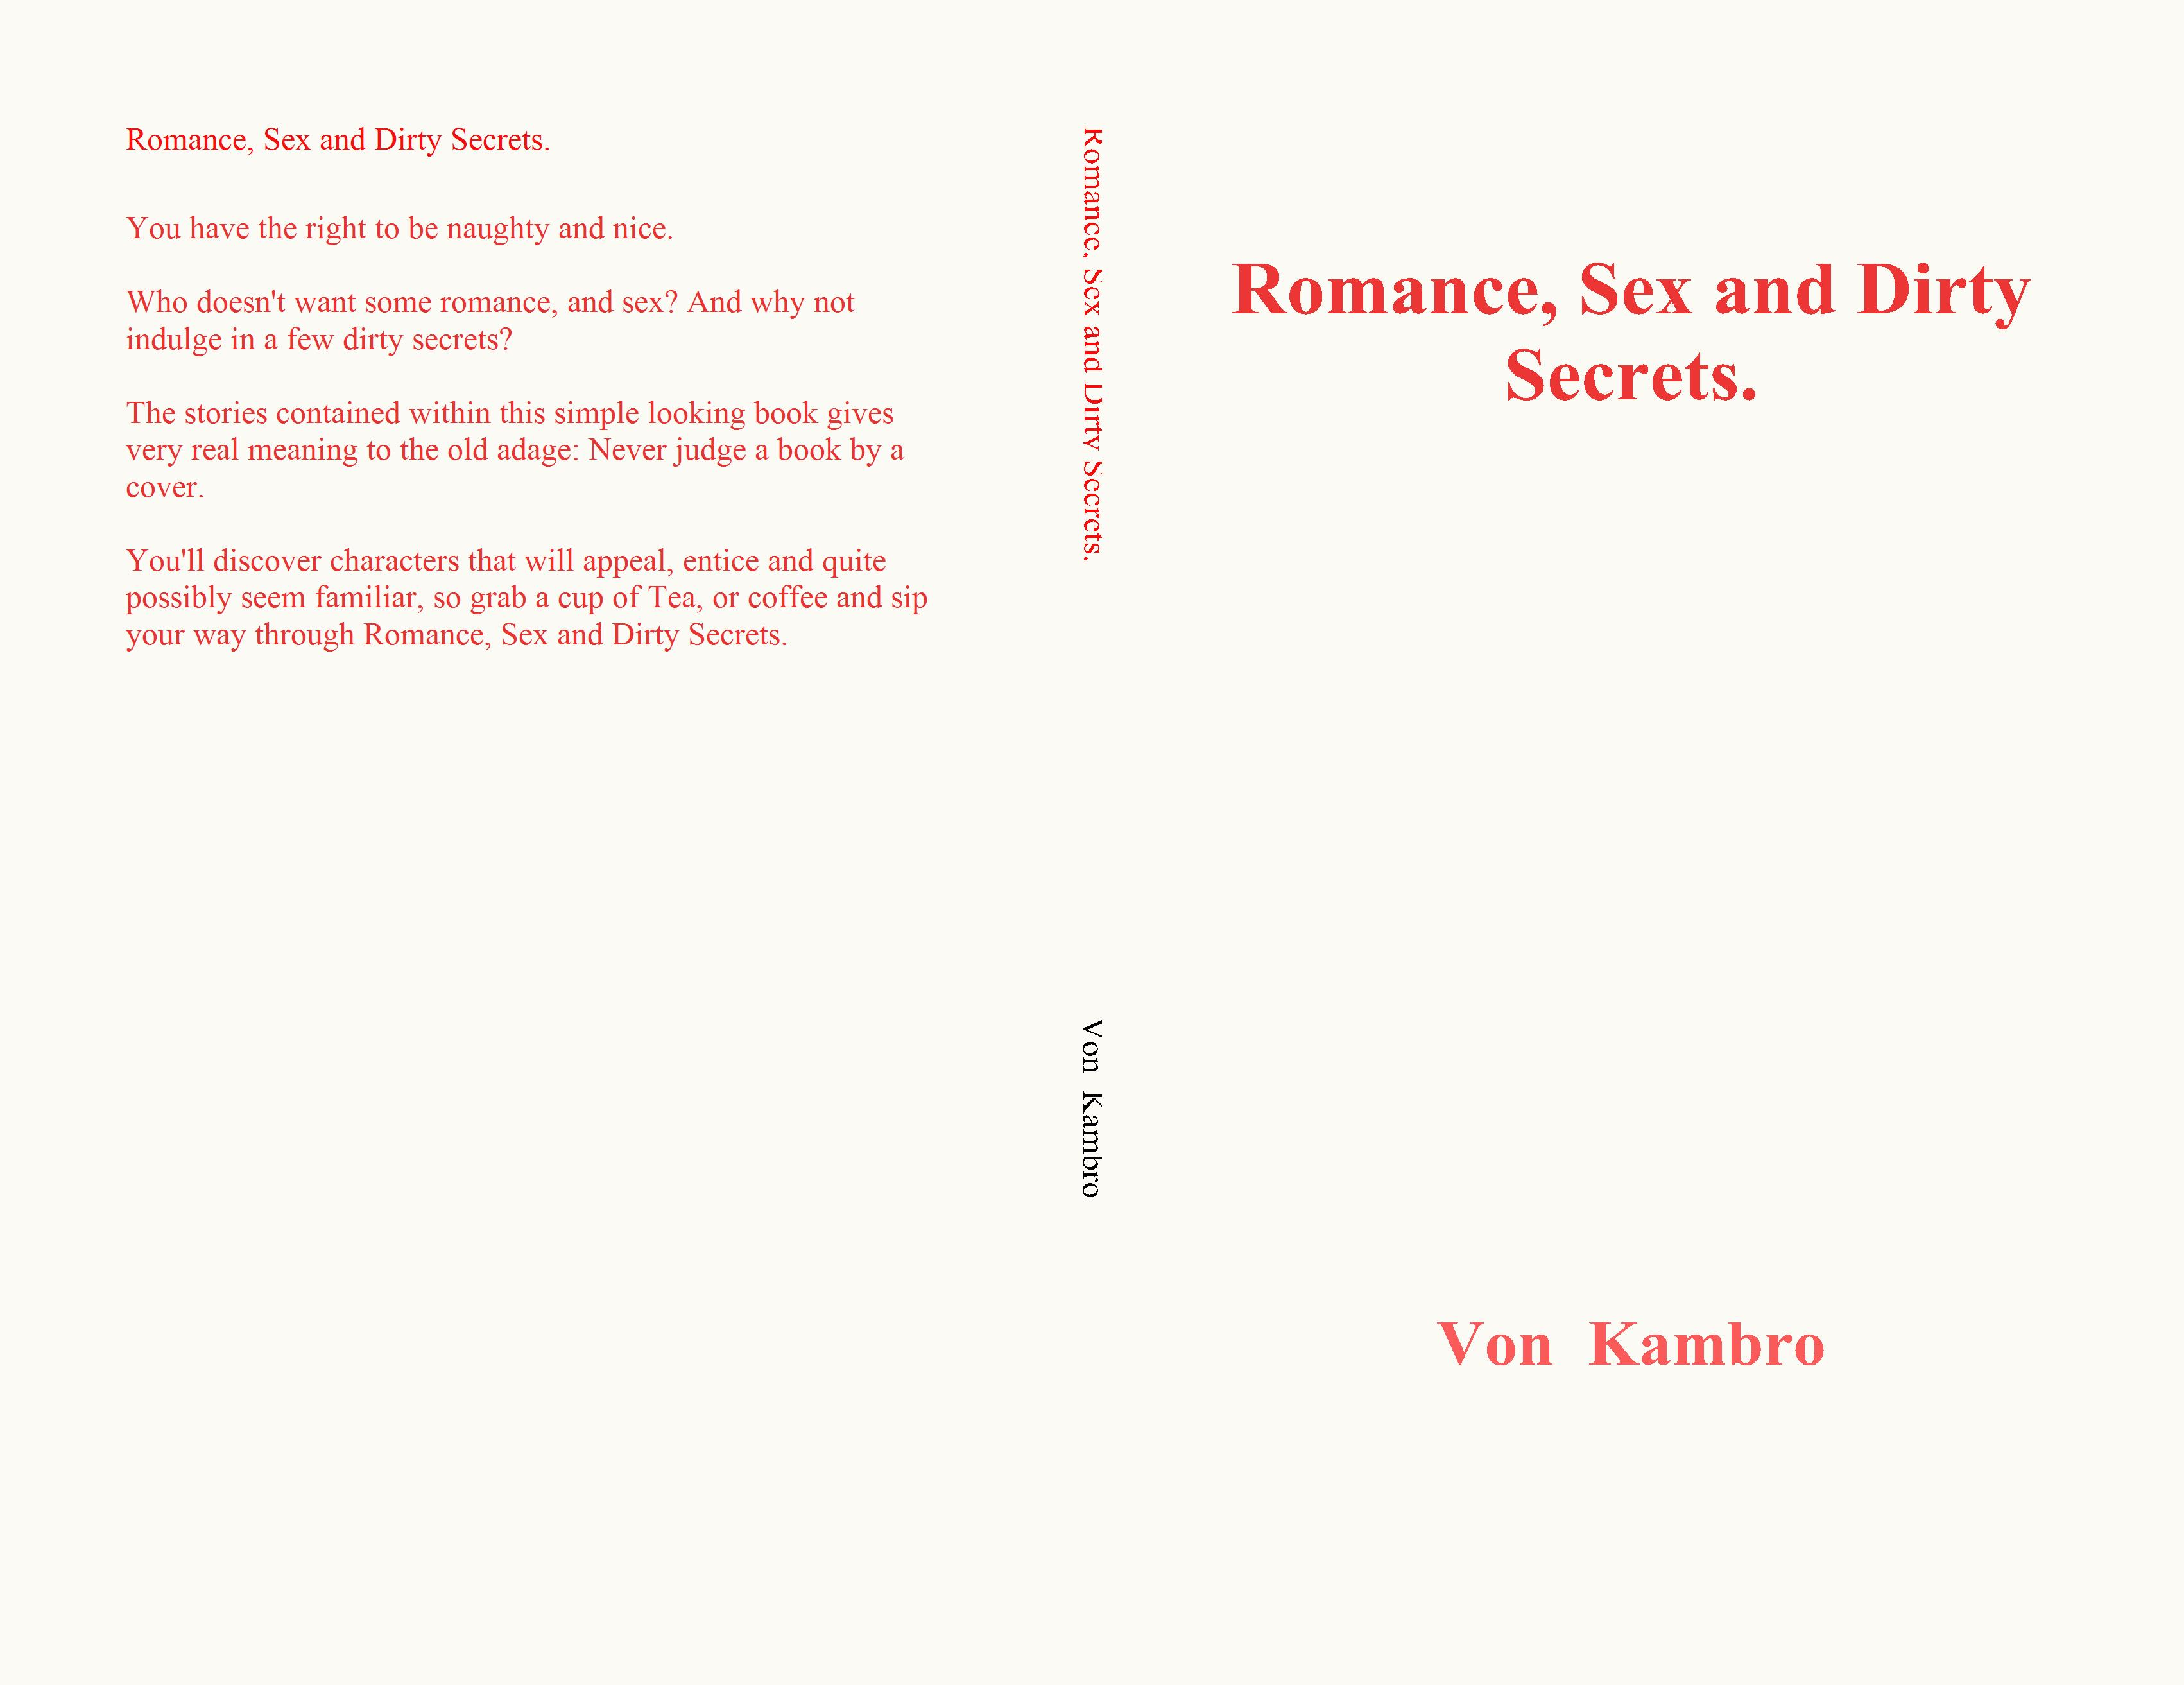 Romance, Sex and Dirty Secrets. cover image